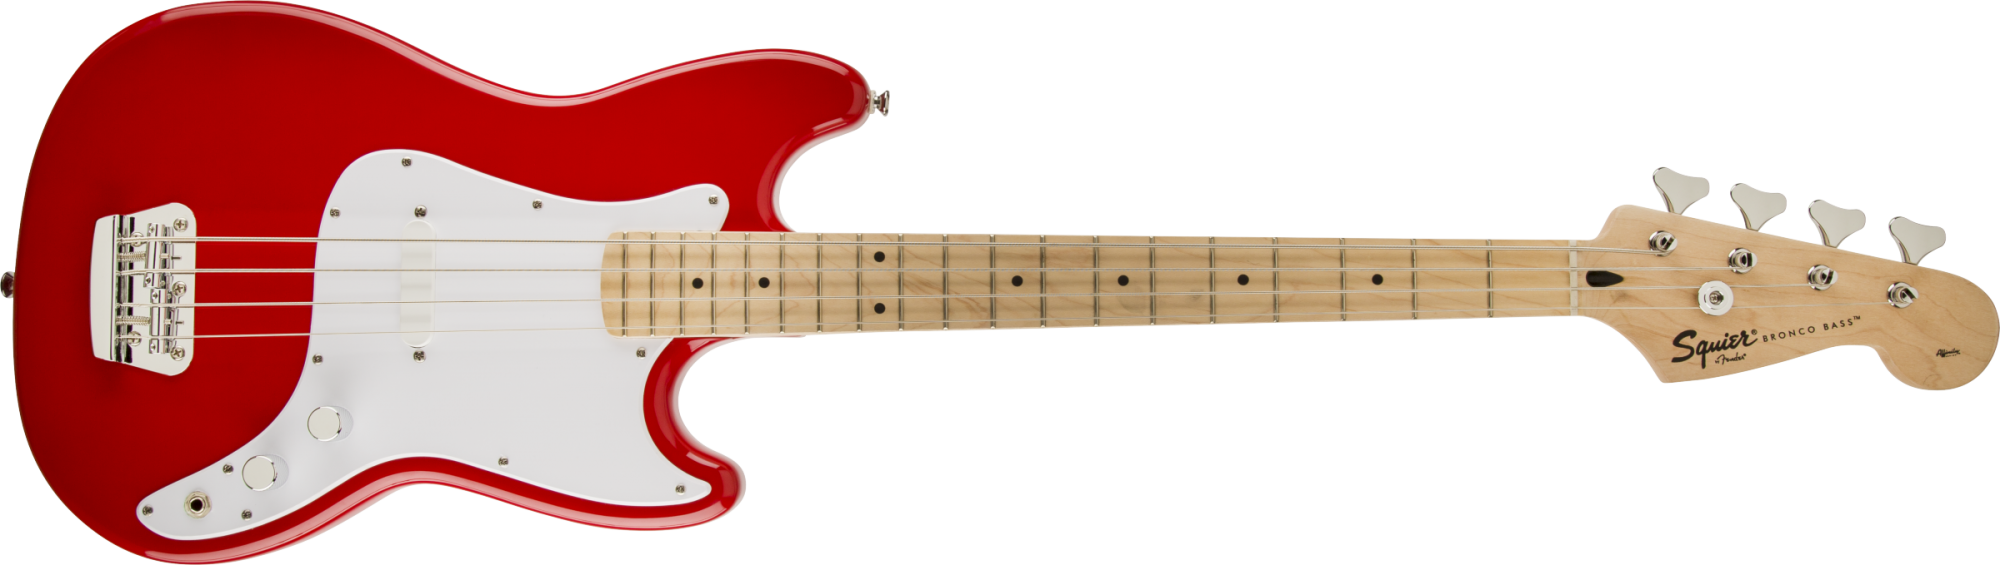 Fender Squire Bronco Bass, Maple Fingerboard, Maple Fingerboard, Torino Red